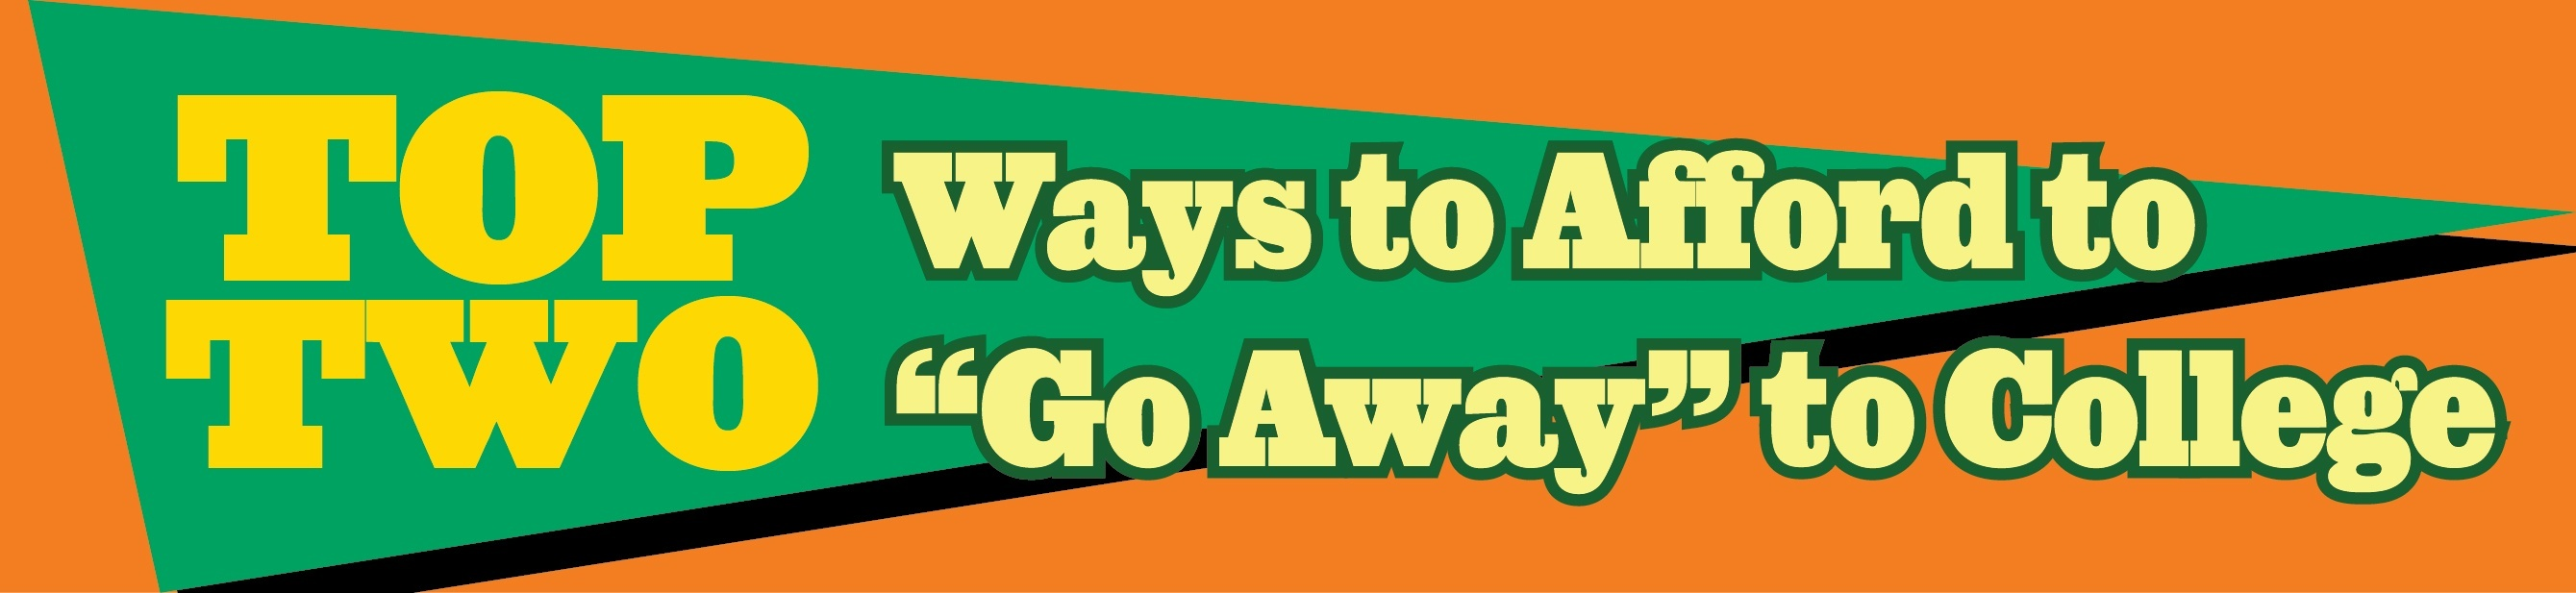 "How to AFFORD to ""Go Away"" to College..."